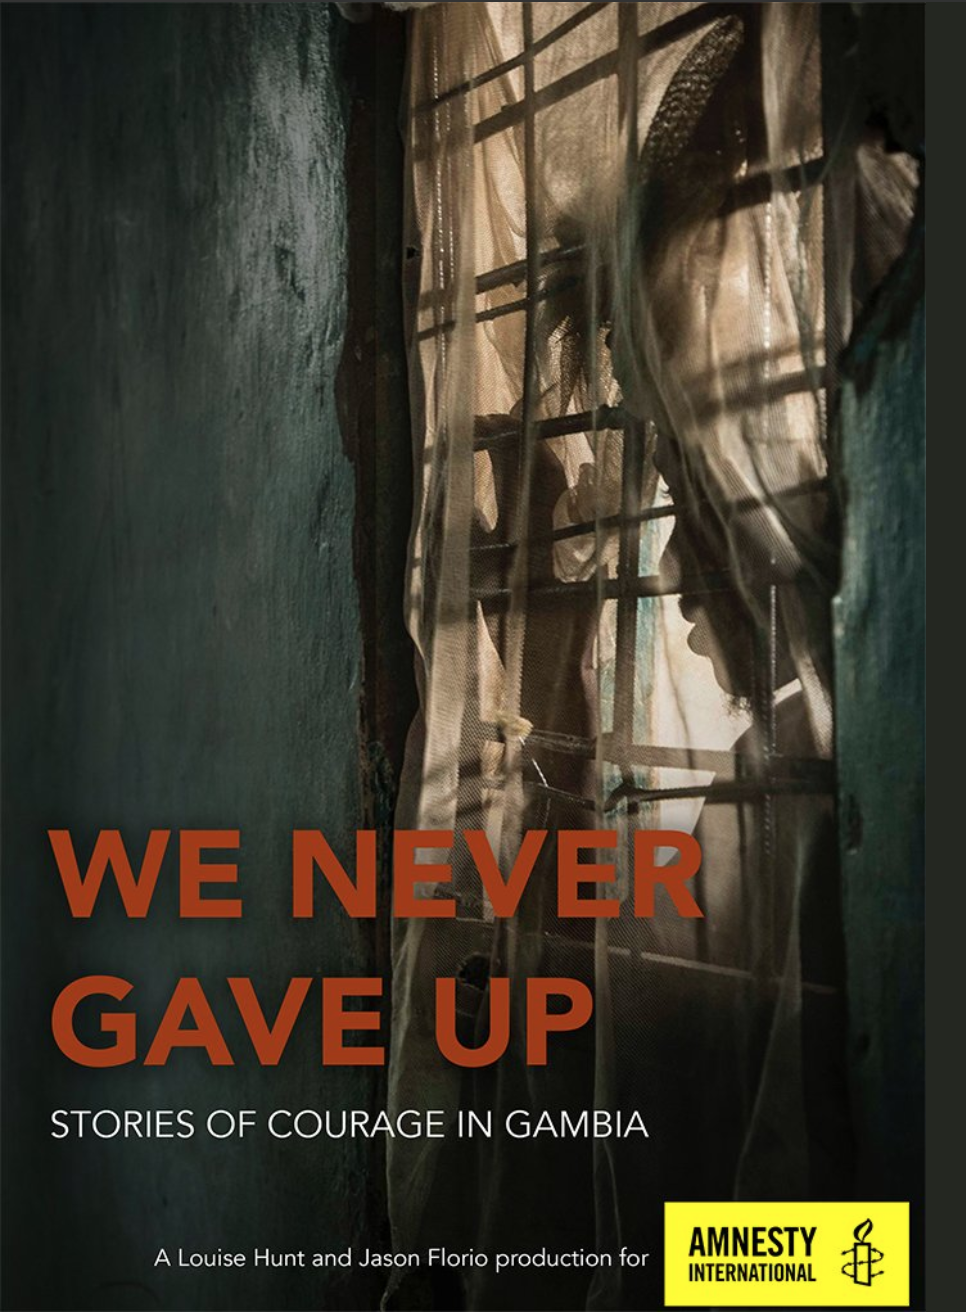 """""""We Never Gave Up: Stories of Courage in Gambia"""" free doc screening, Aug 13th, London. Poster Image © Helen Jones-Florio (inside Mile2 prison) """"We Never Gave Up: Stories of Courage in Gambia"""" free doc screening, Aug 13th, London. Image © Helen Jones-Florio (inside Mile2 prison)"""